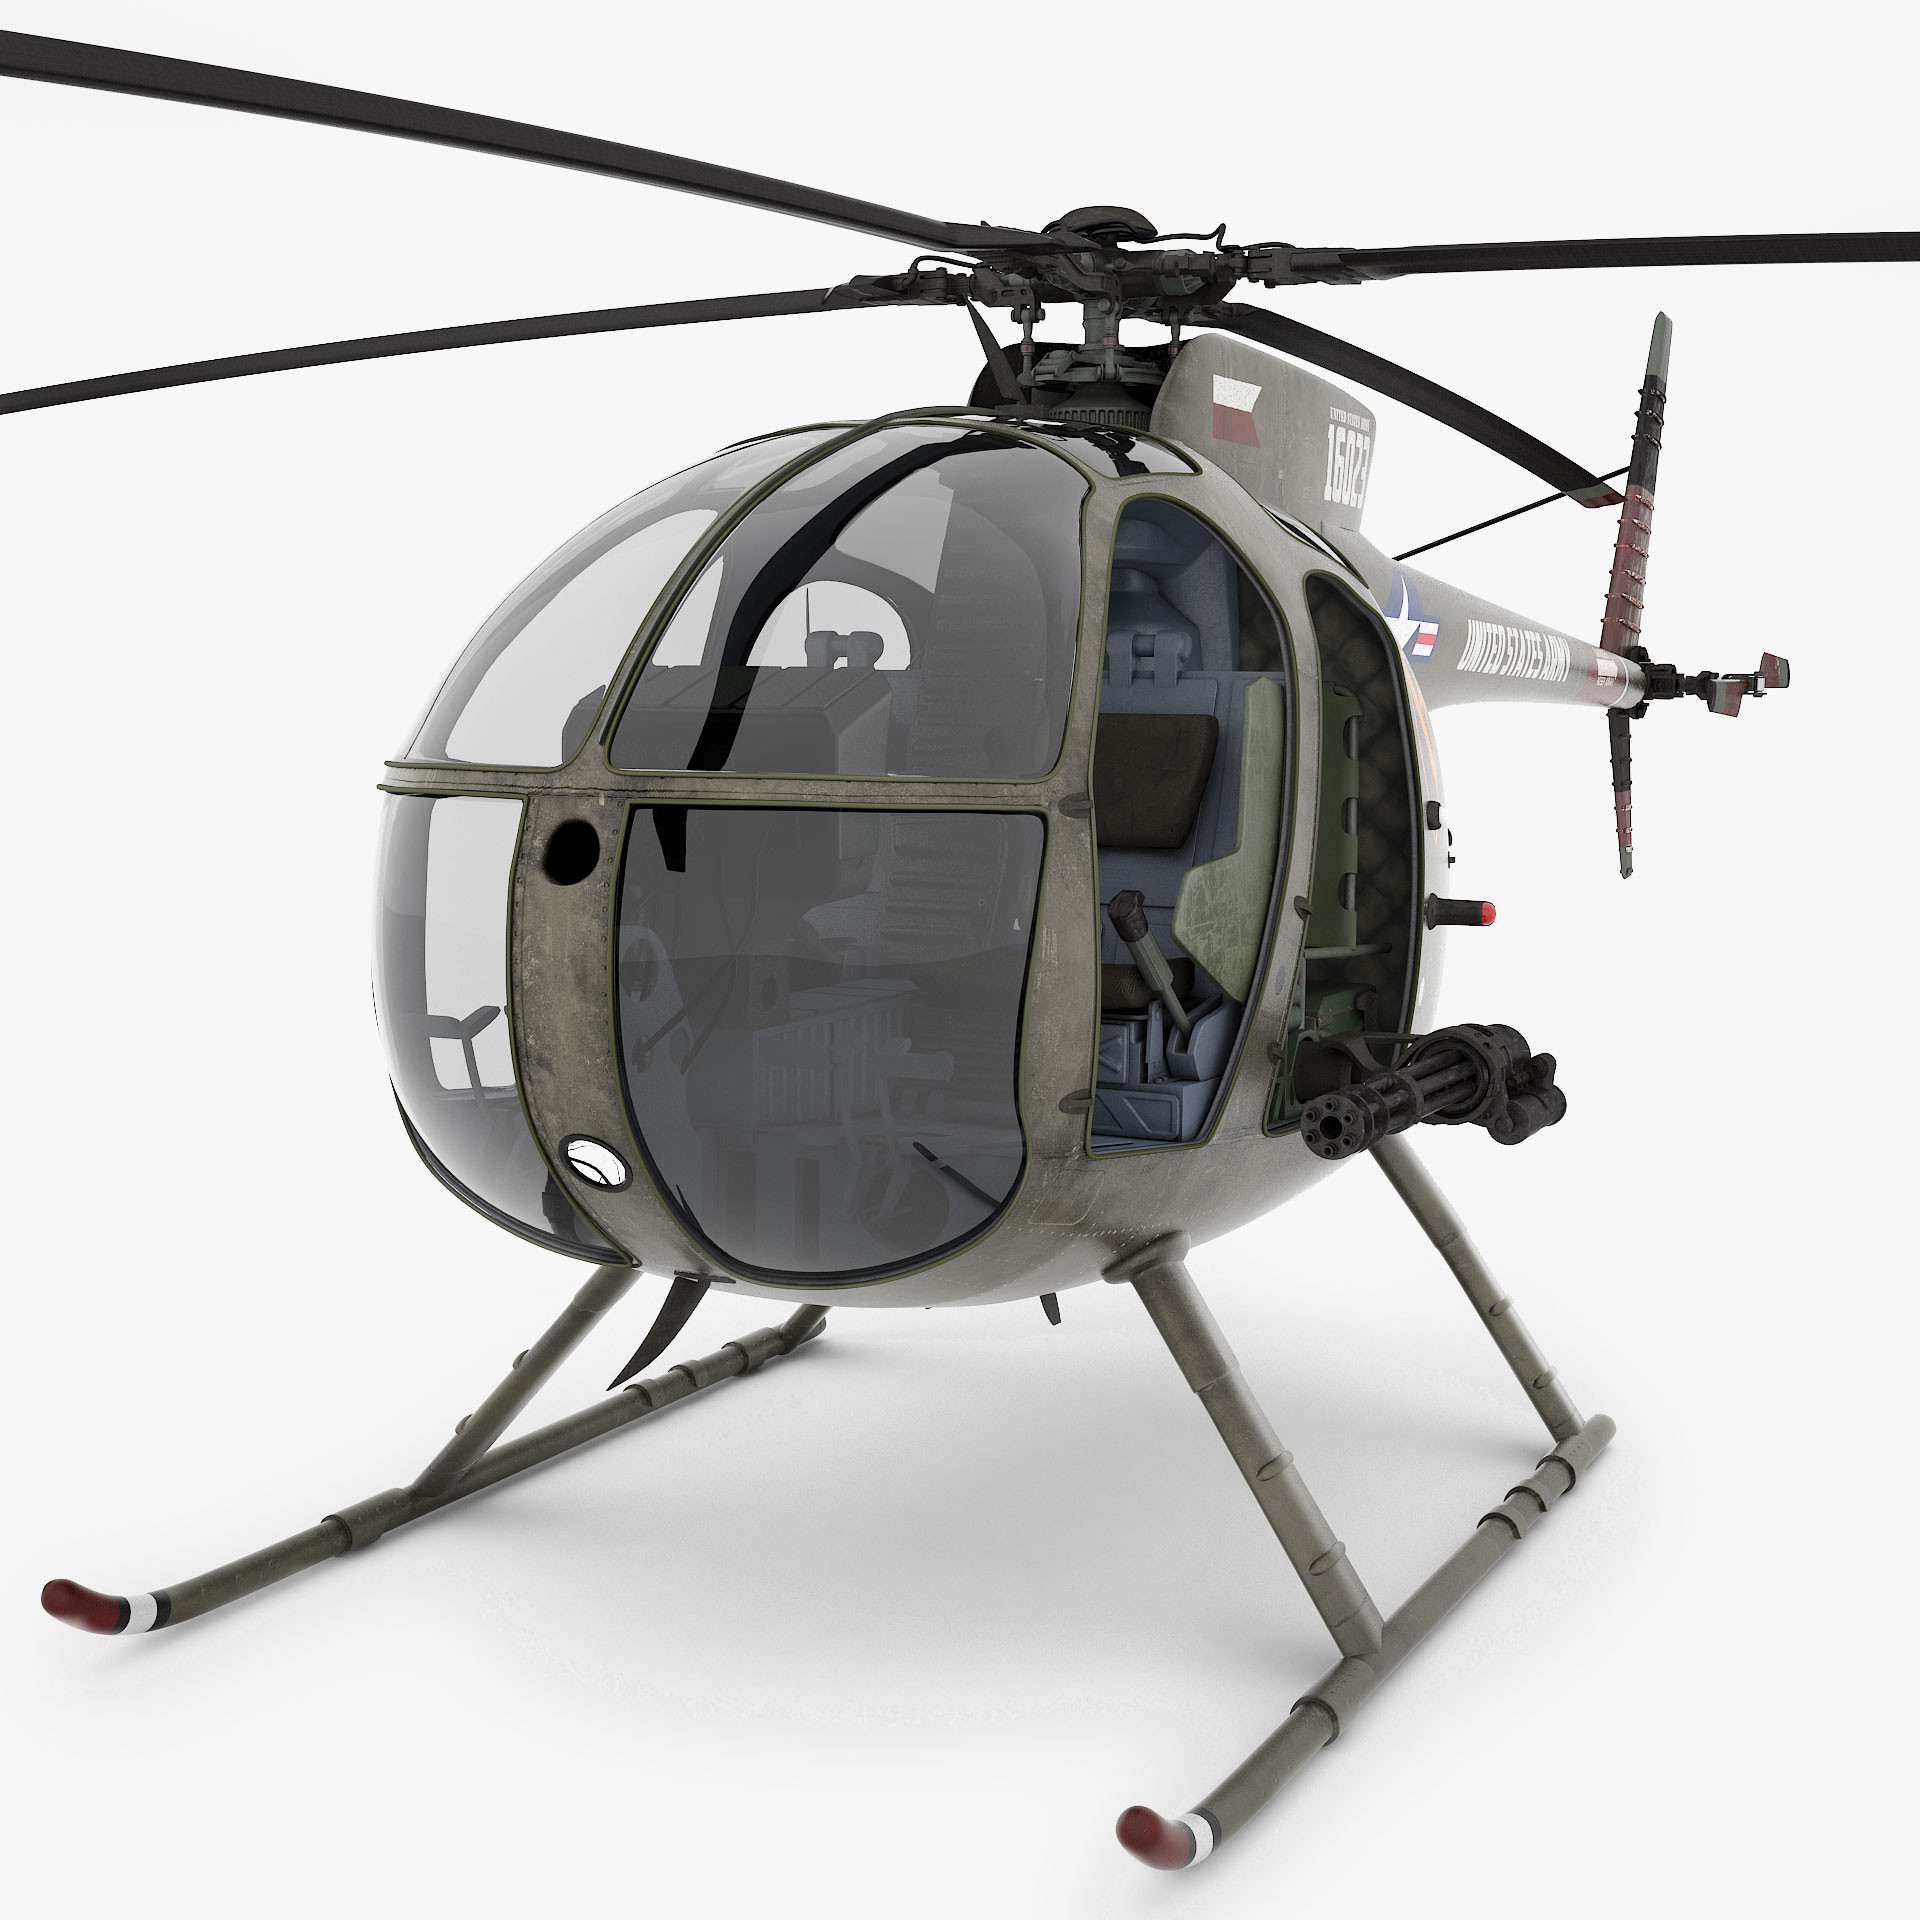 3d model of hughes oh-6 cayuse helicopter